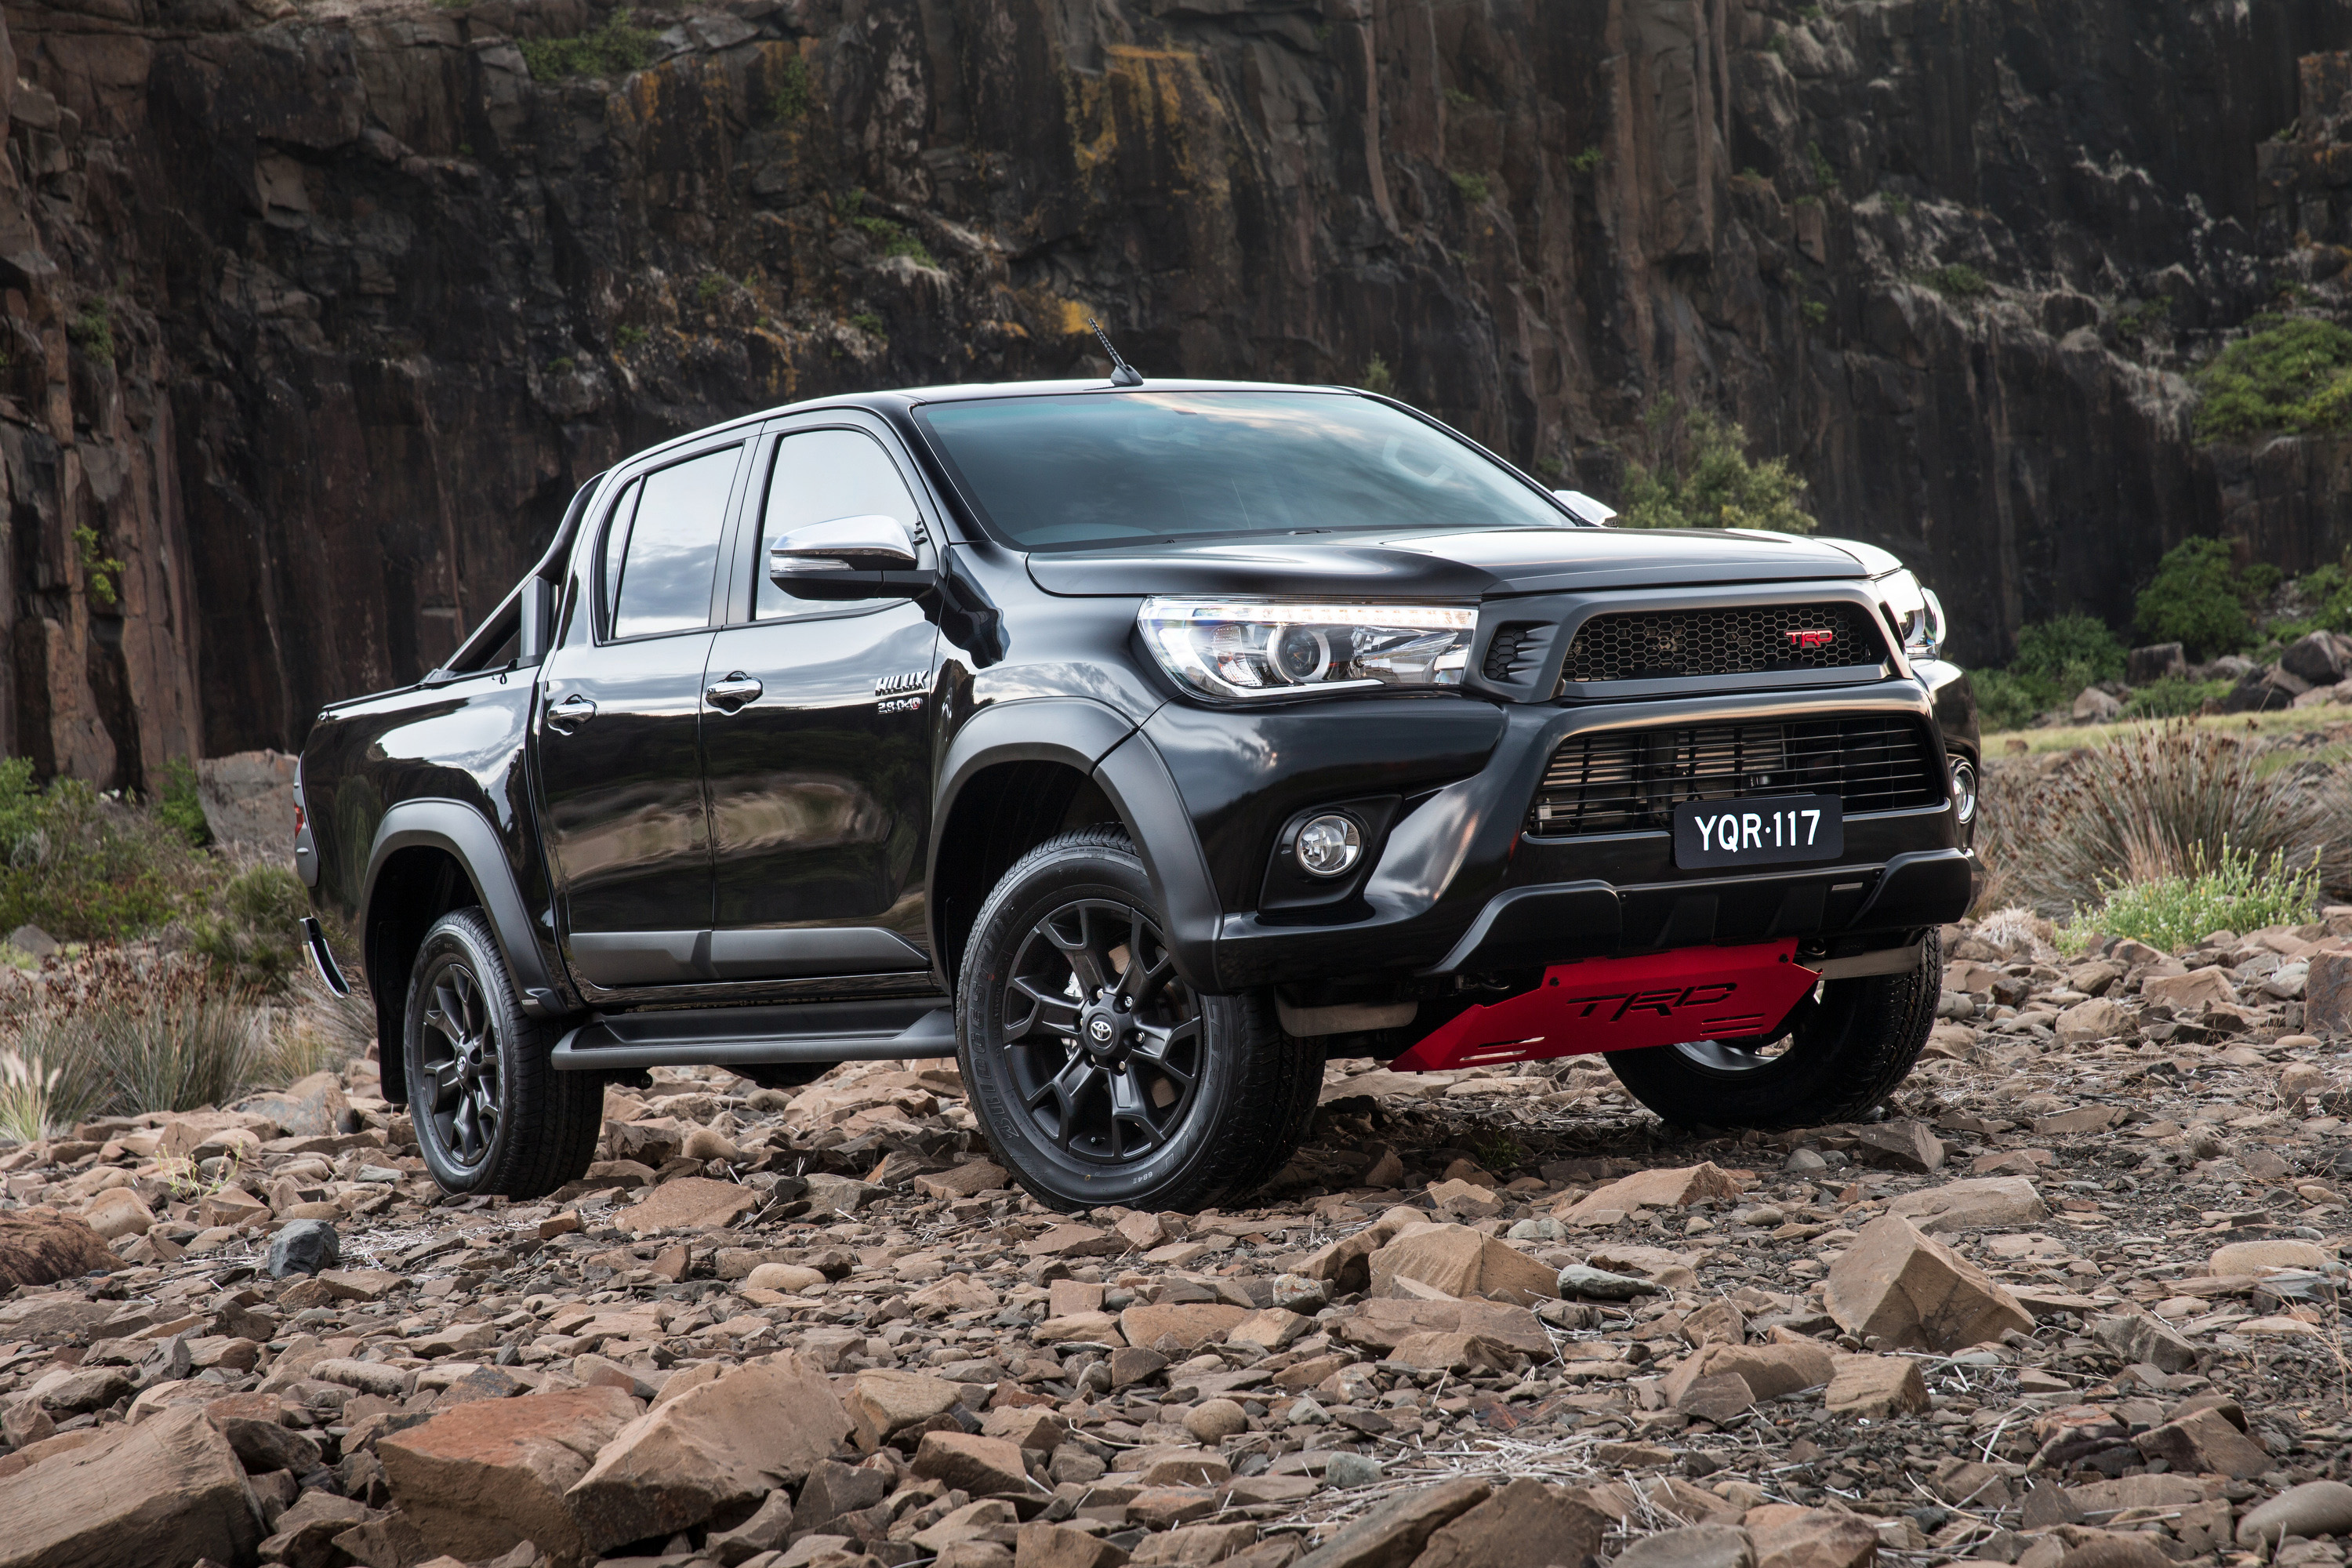 News Final Days For Petrol V6 Toyota Hilux